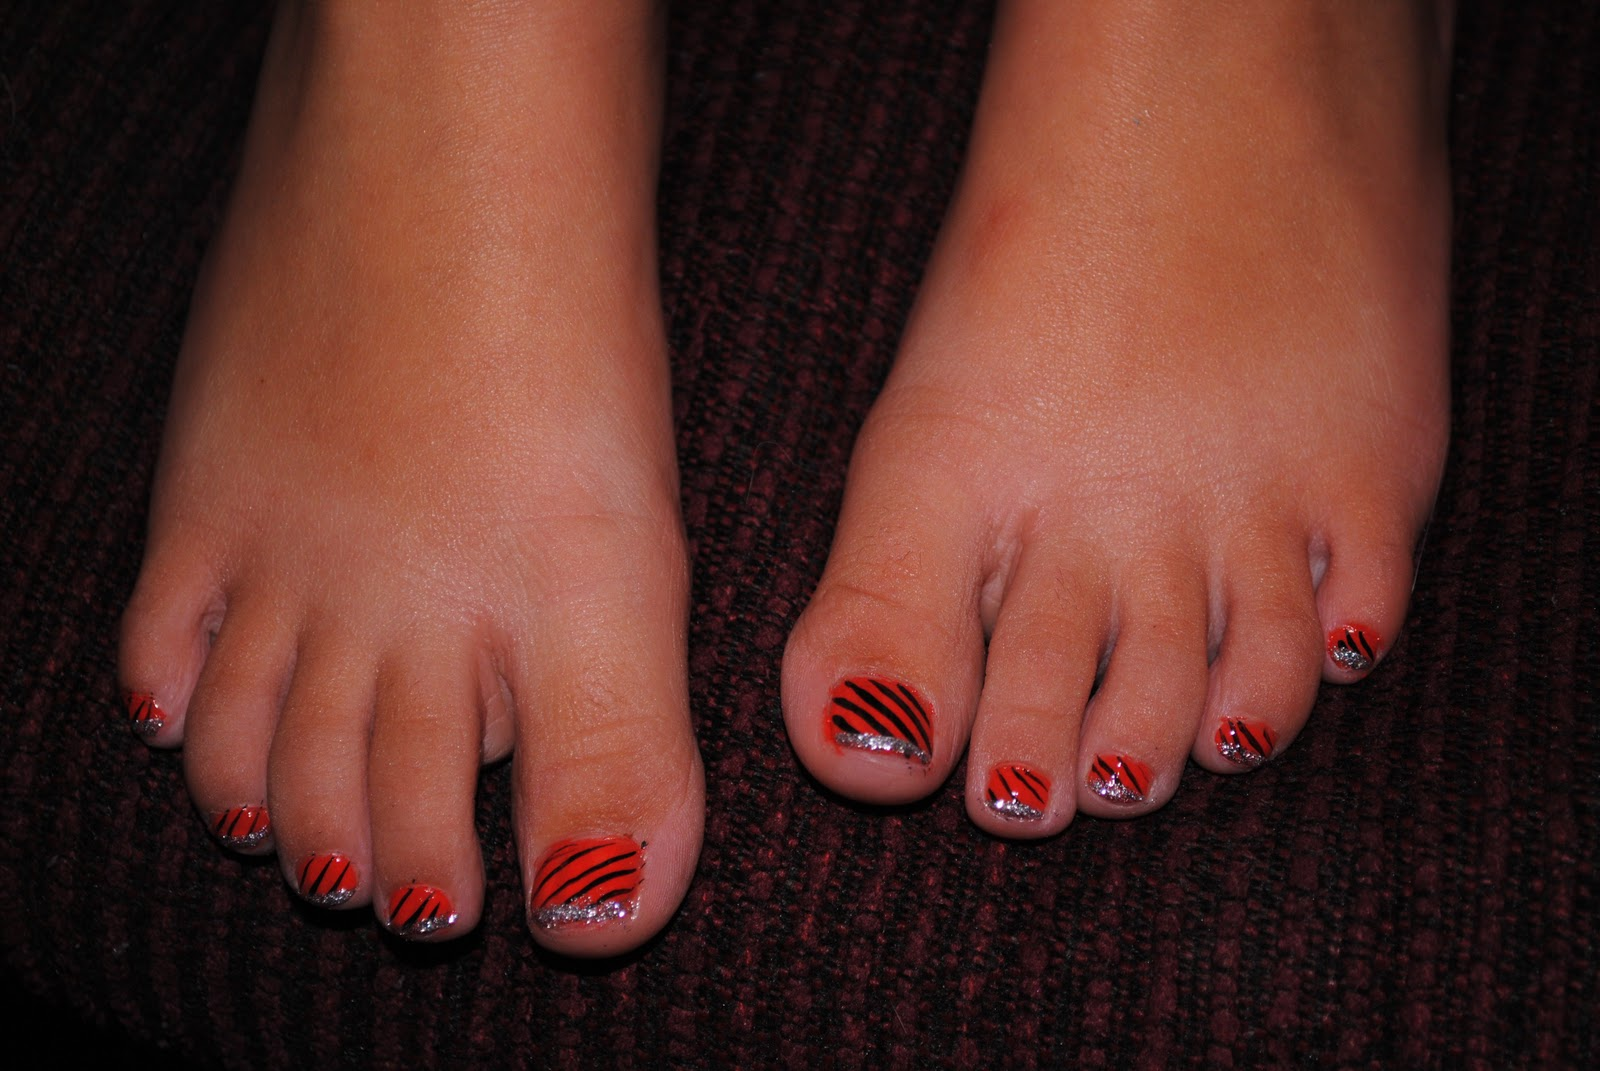 Allred Family: Trick or Treat, Paint My Feet